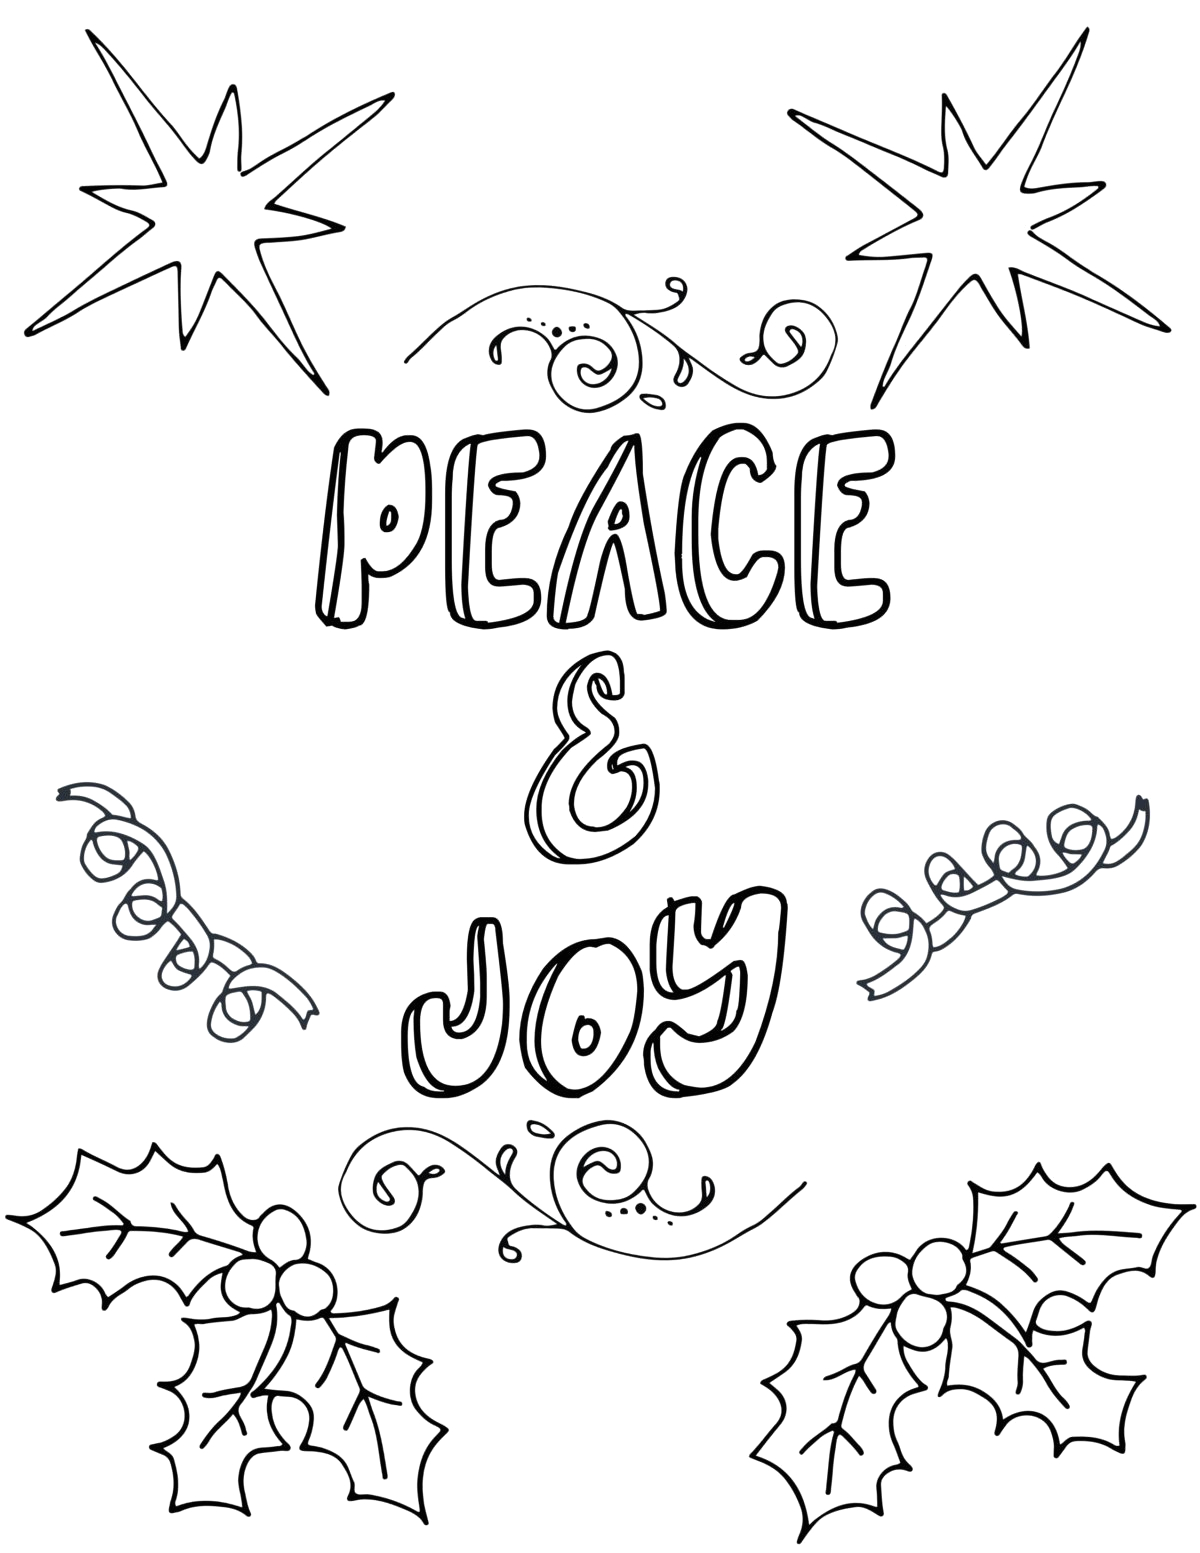 Free Printable Holiday Coloring Pages for Adults Free Printable Christmas Coloring Pages for Adults